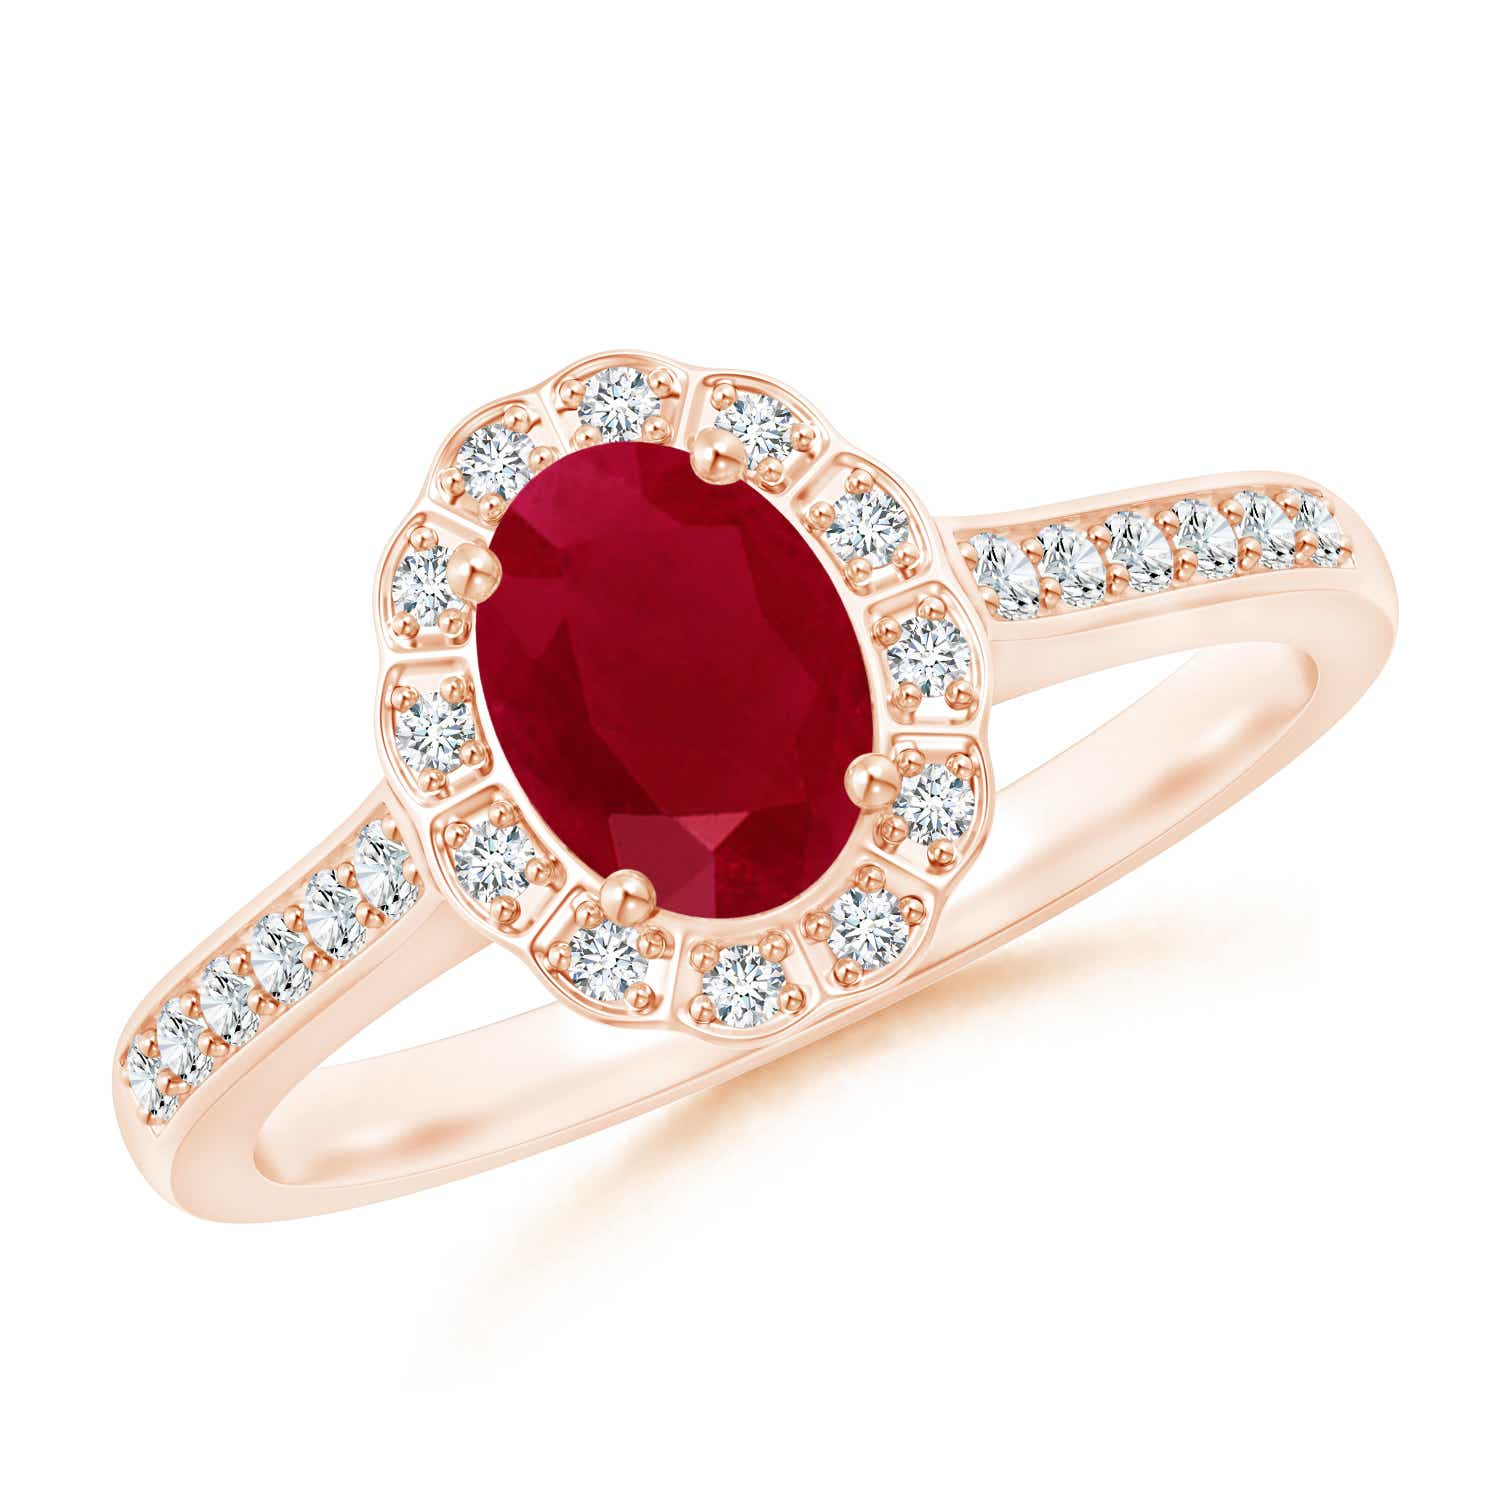 Angara Natural Ruby Engagement Ring in 14k Yellow Gold zrgXzR5T